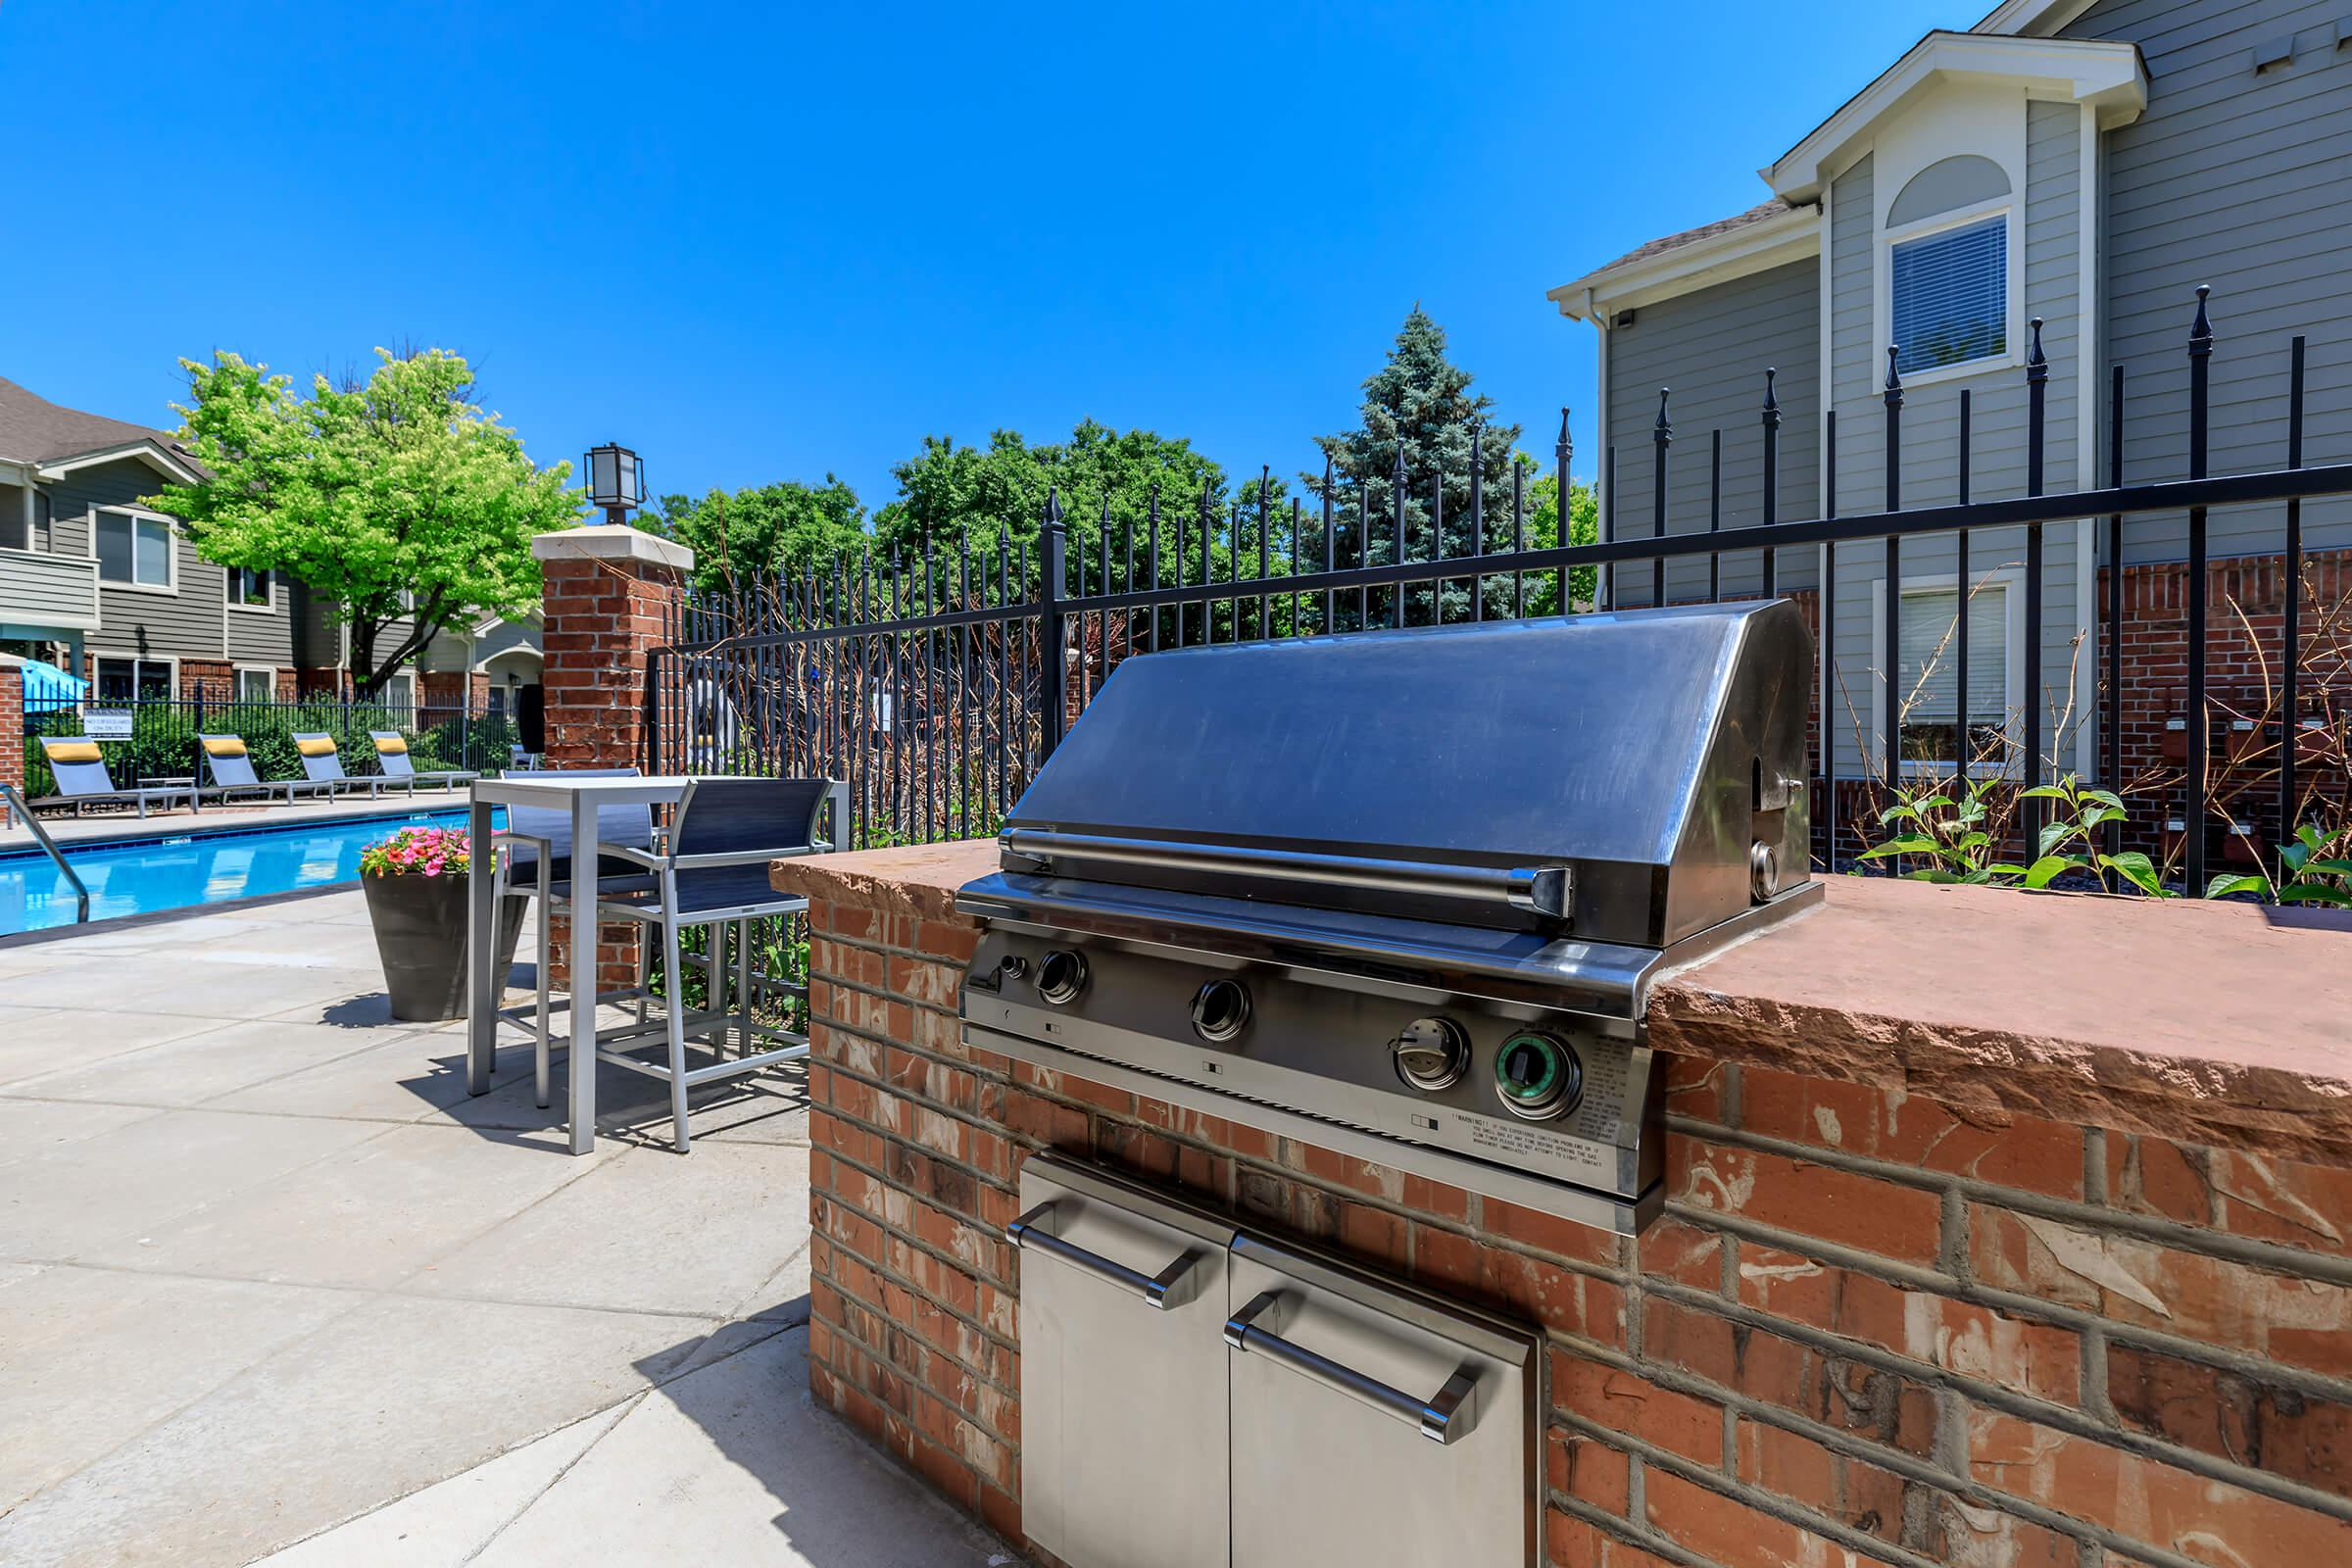 SHOW OFF YOUR BARBECUE SKILLS